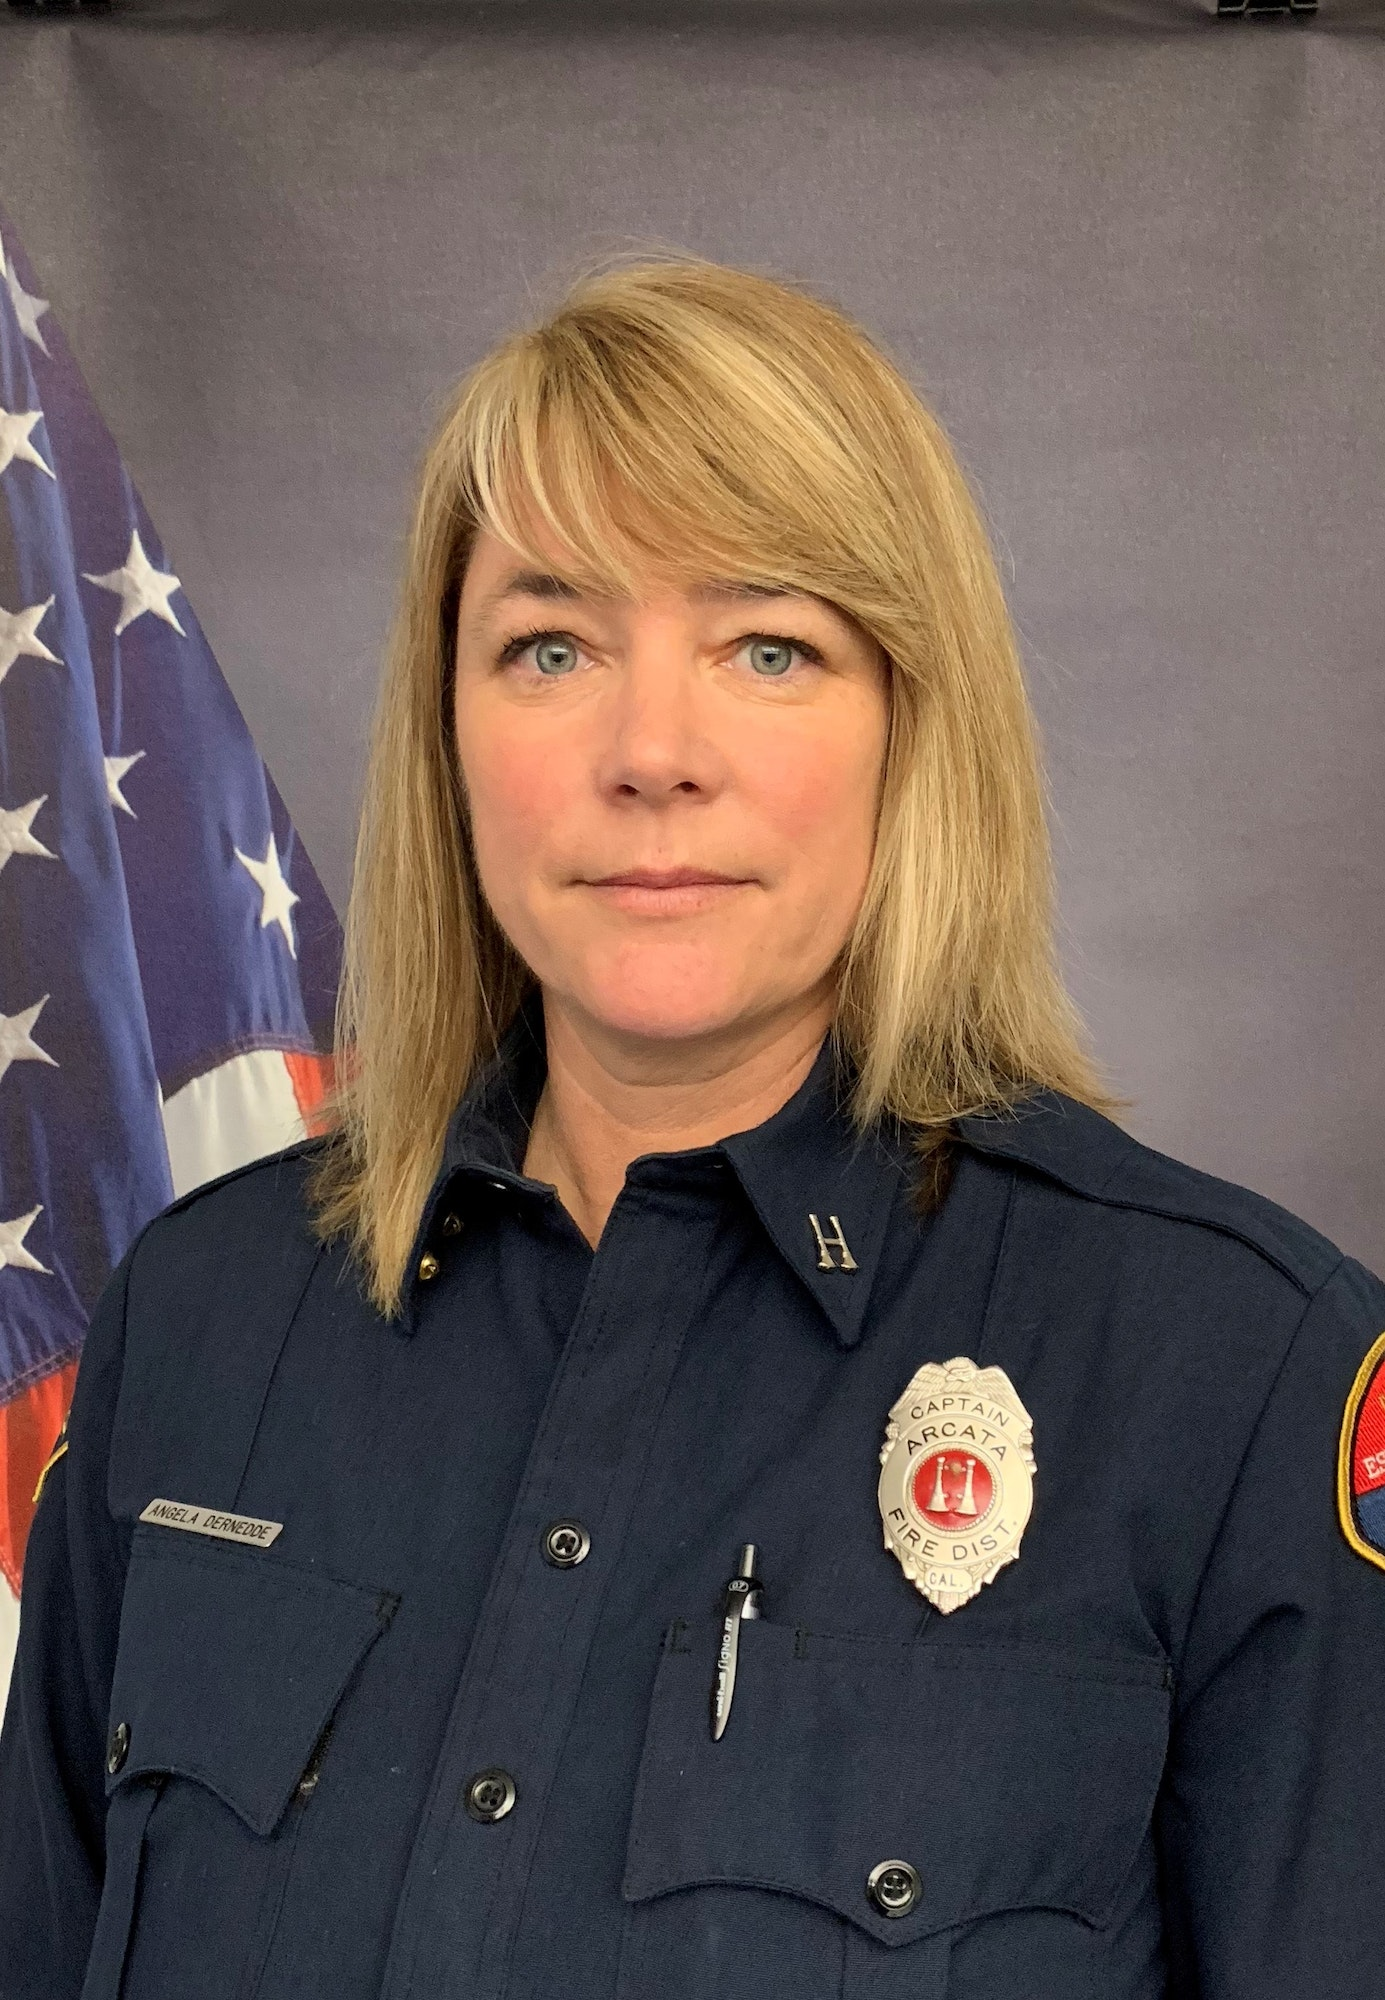 Staff photo of Fire Captain.